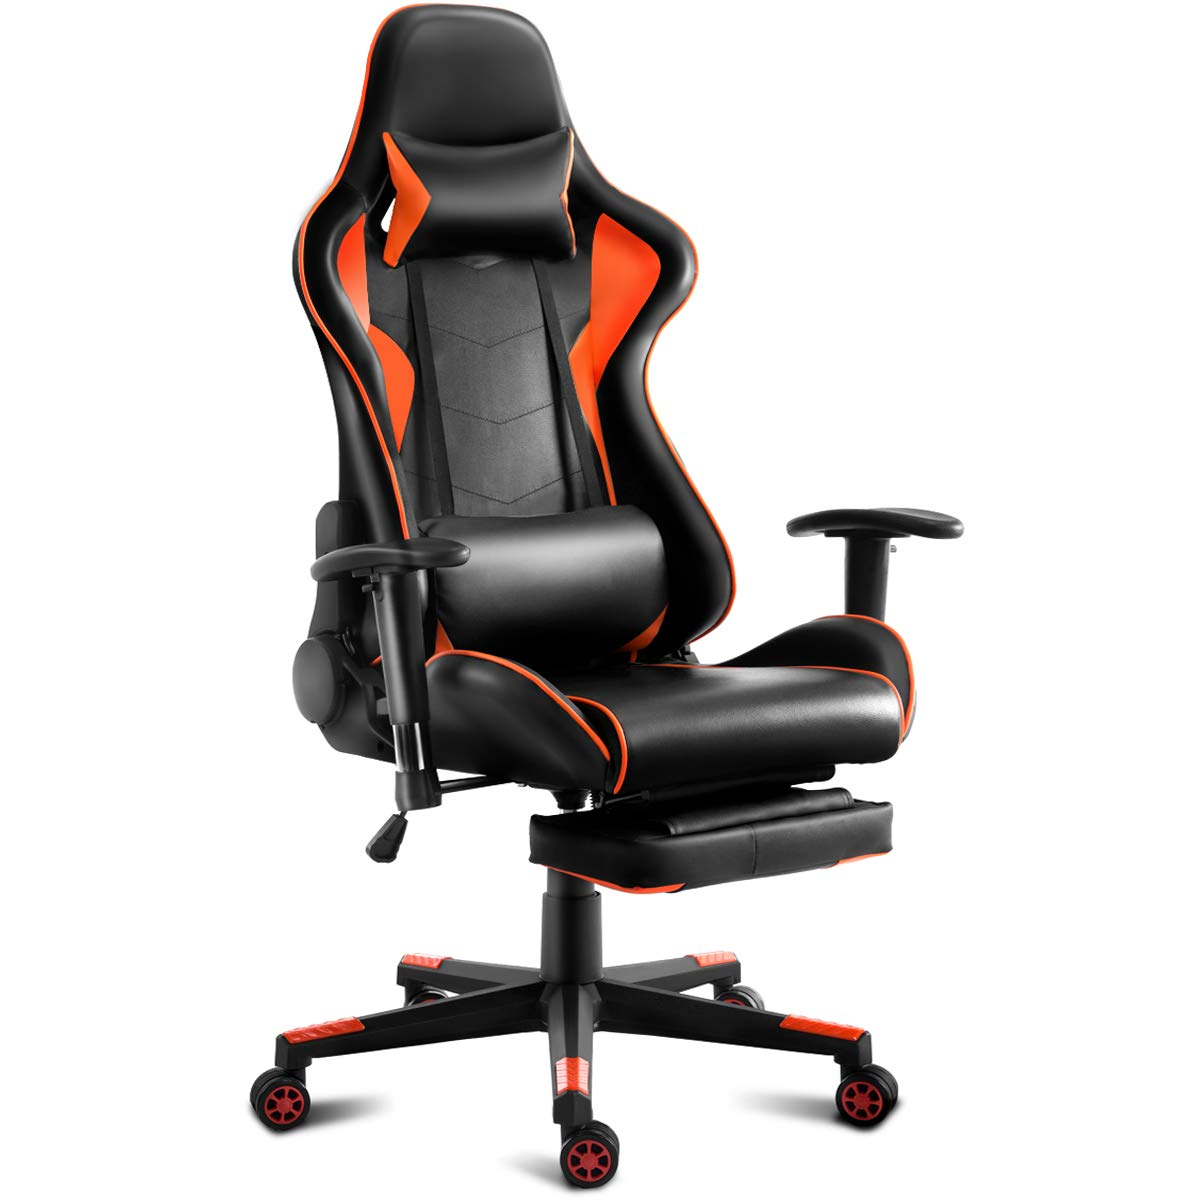 Giantex Gaming Chair Racing Style High Back Ergonomic Office Chair Executive Swivel Computer Chair with Lumbar Support, Headrest and Footrest Orange